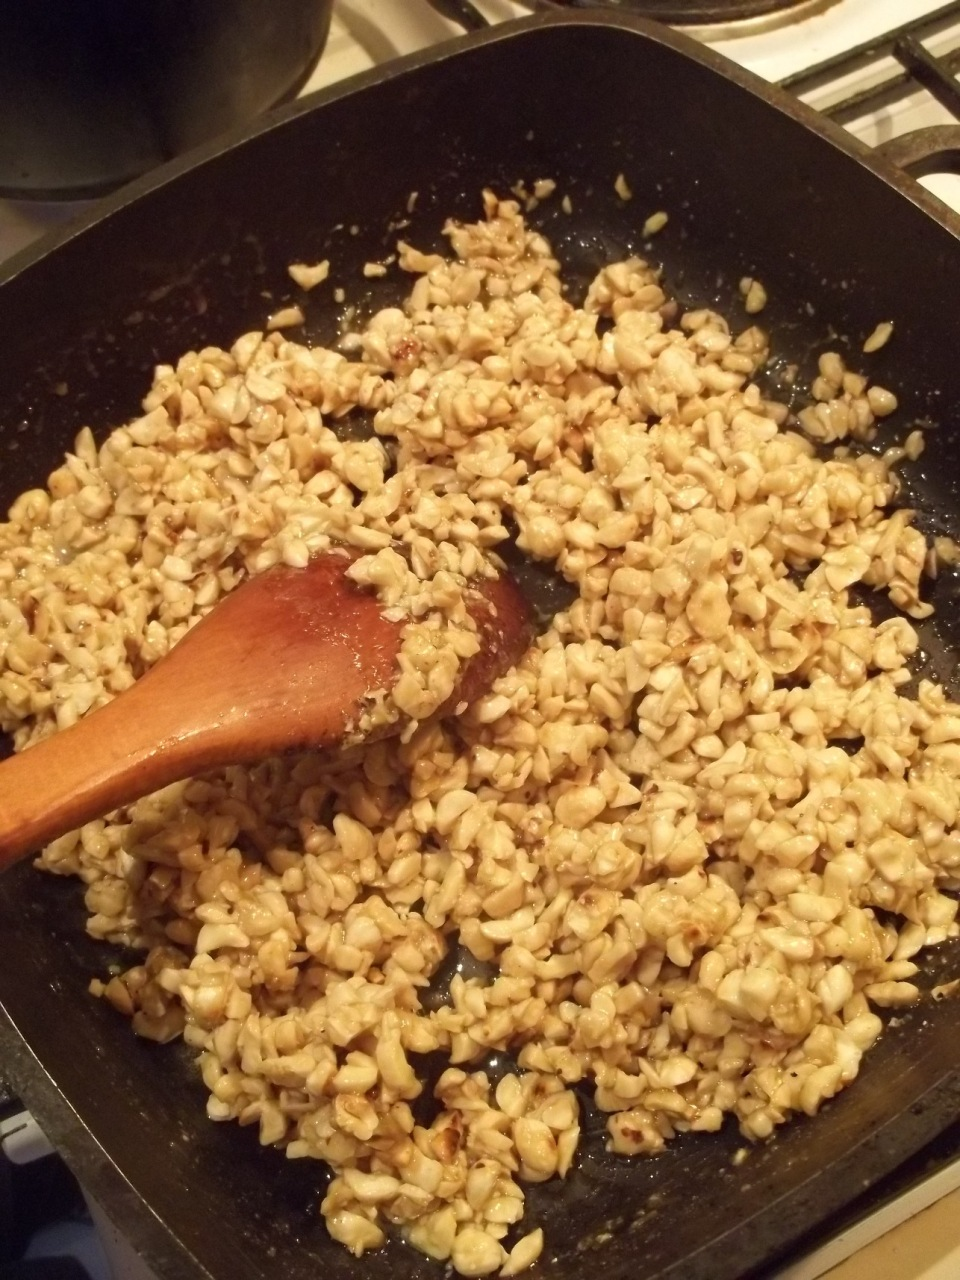 Mixing Hazelnuts with Honey Mixture - Copy